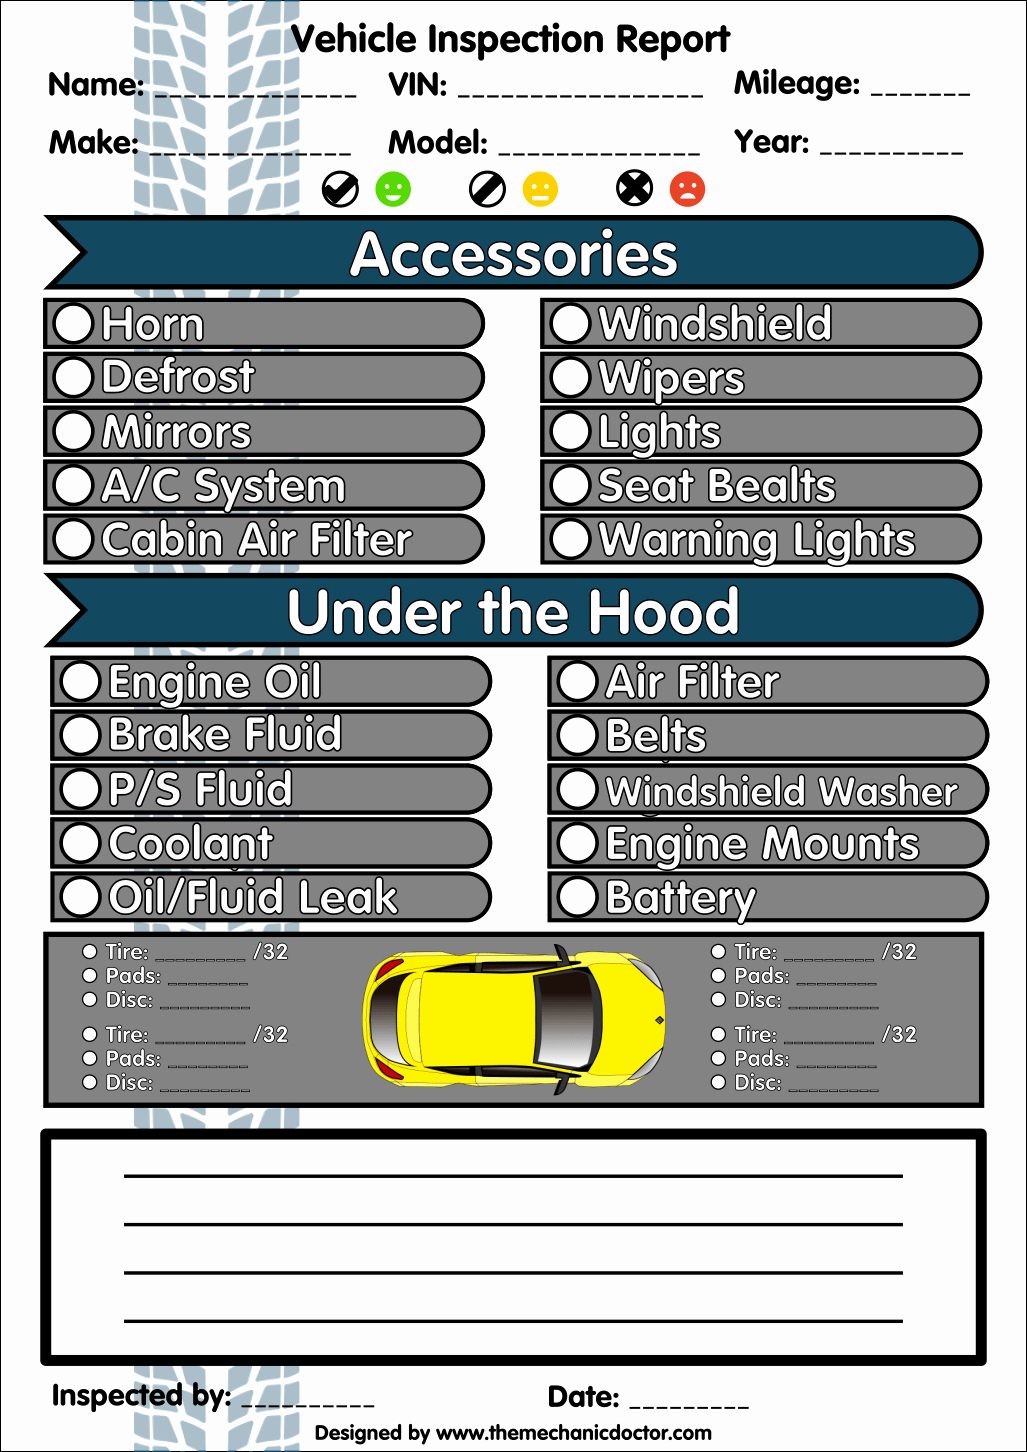 Car Inspection Checklist Template Awesome 6 Free Vehicle Inspection forms Modern Looking